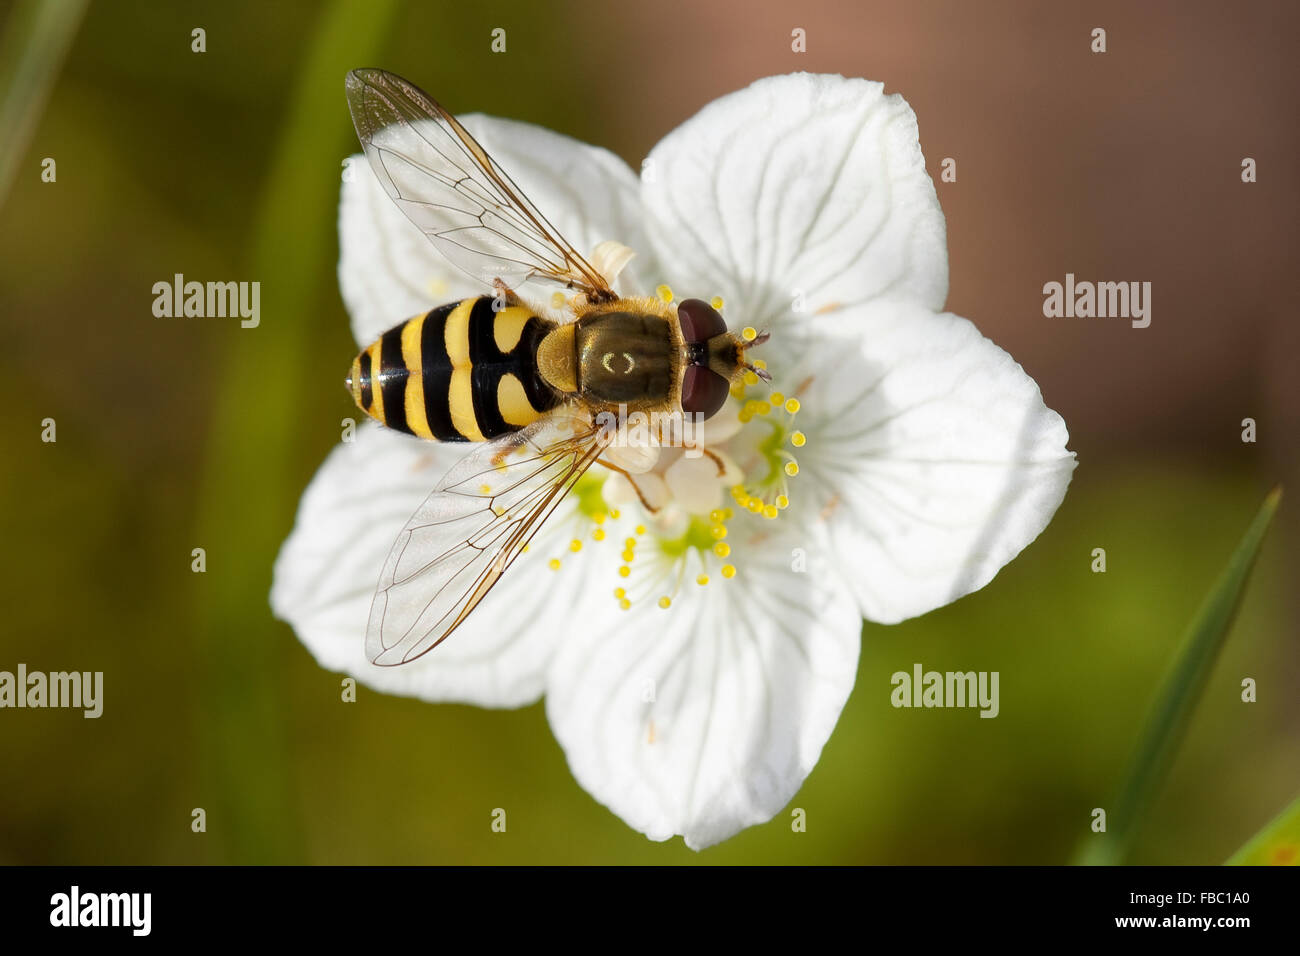 Hover fly, hoverfly, syrphid fly, flower fly, female, Behaarte Schwebfliege, Weibchen, Blütenbesuch, Syrphus - Stock Image